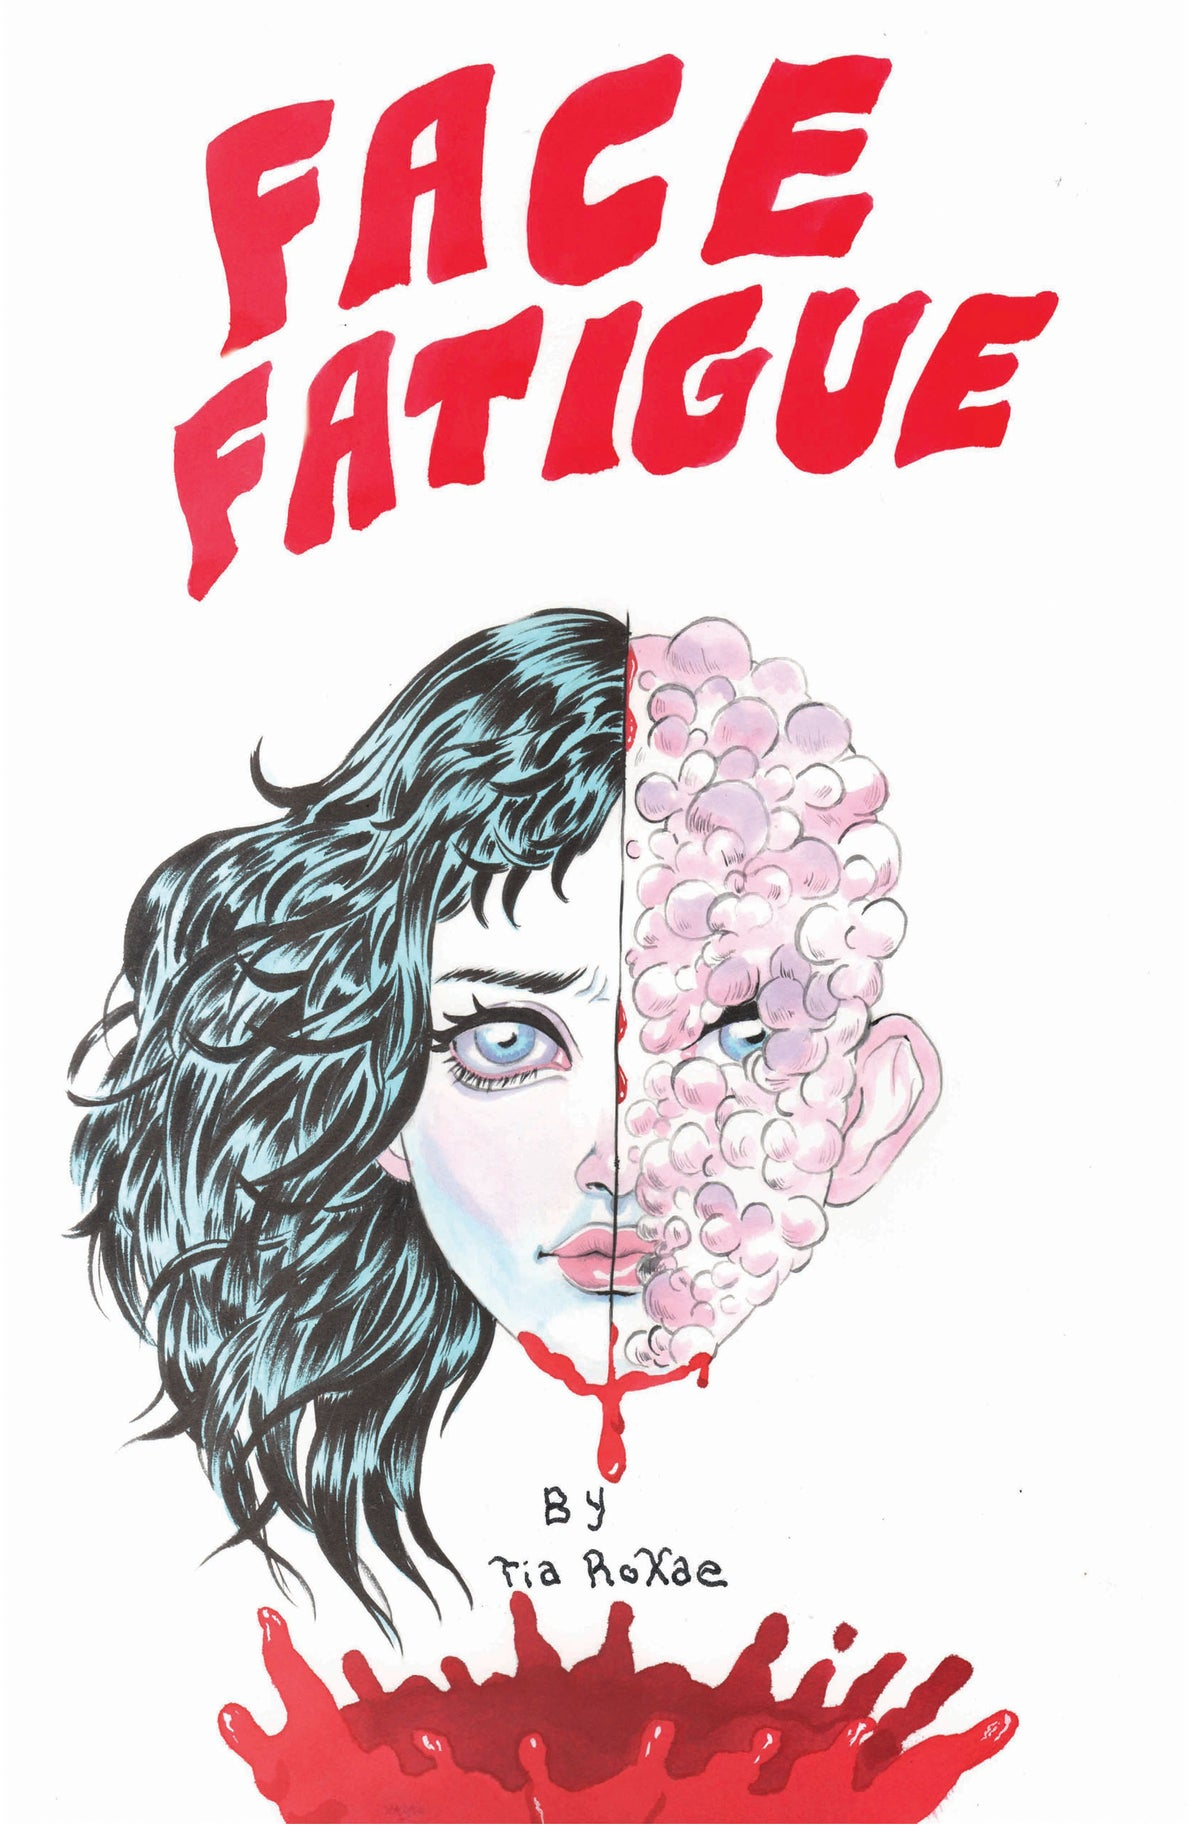 Image of Face Fatigue